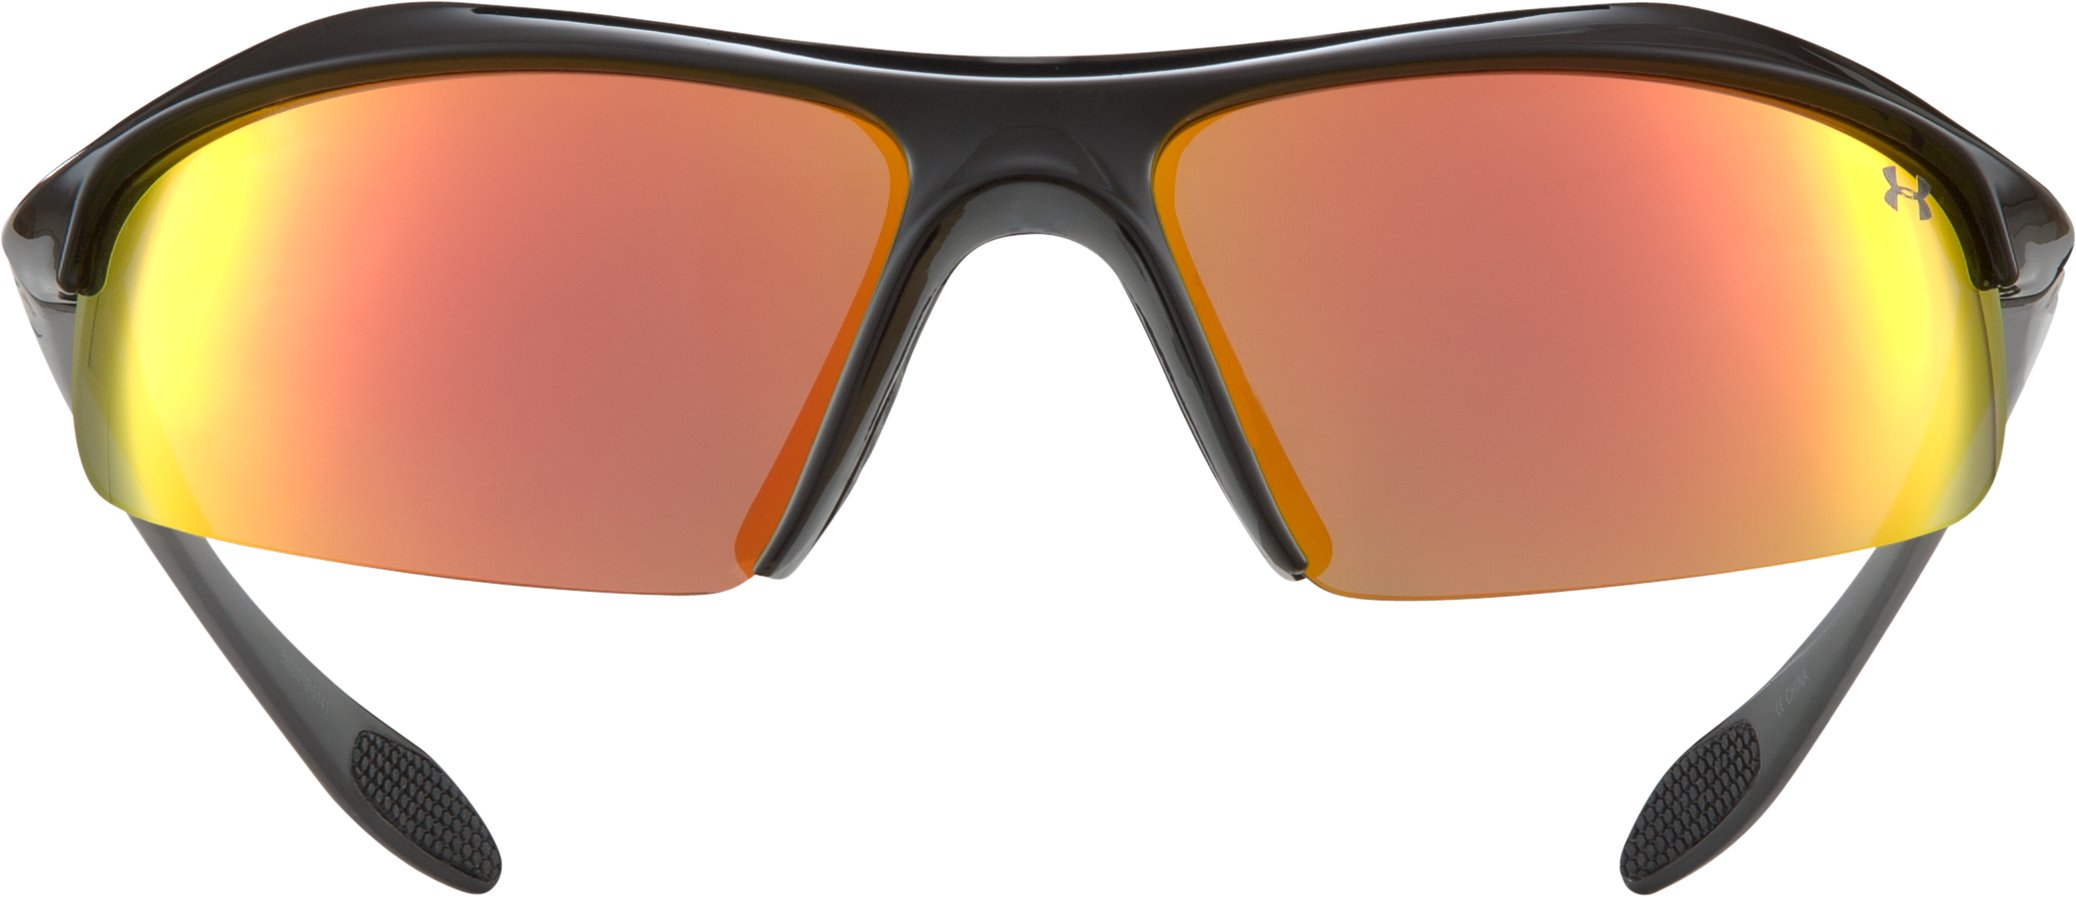 UA Zone Orange Multiflection™ Sunglasses, Shiny Black